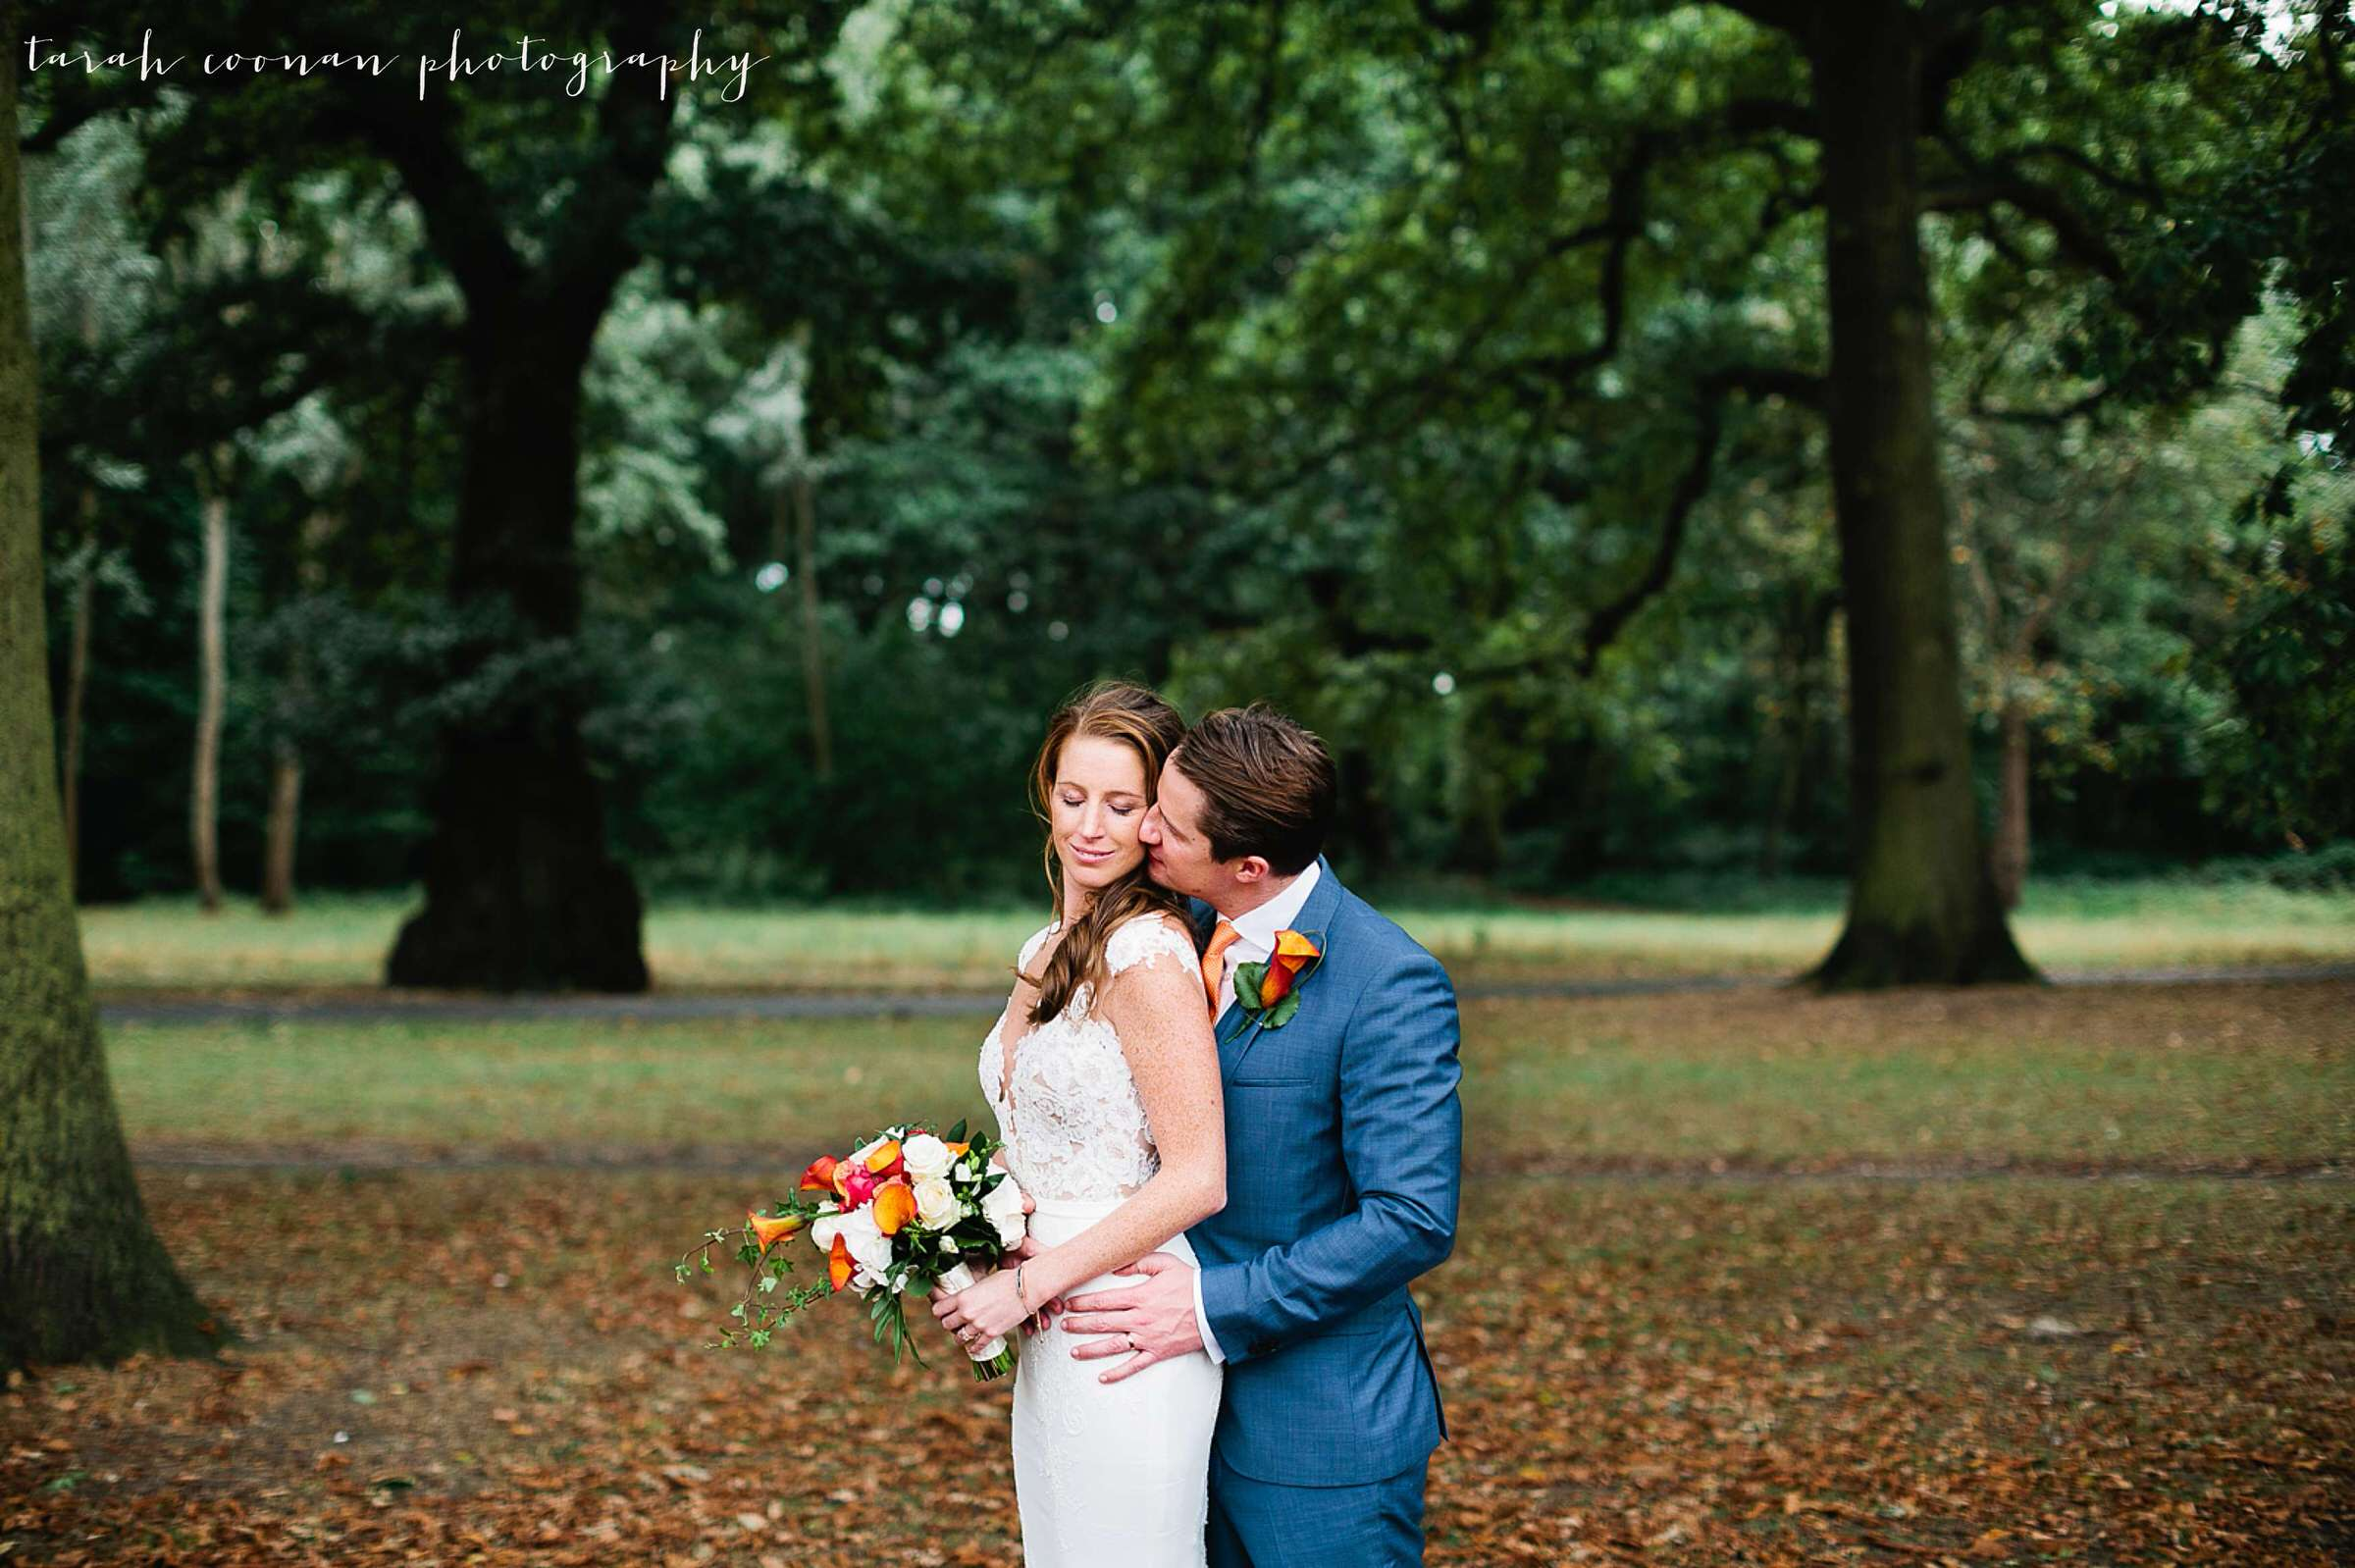 Dulwich College wedding photographer - Aisling & Jeremy